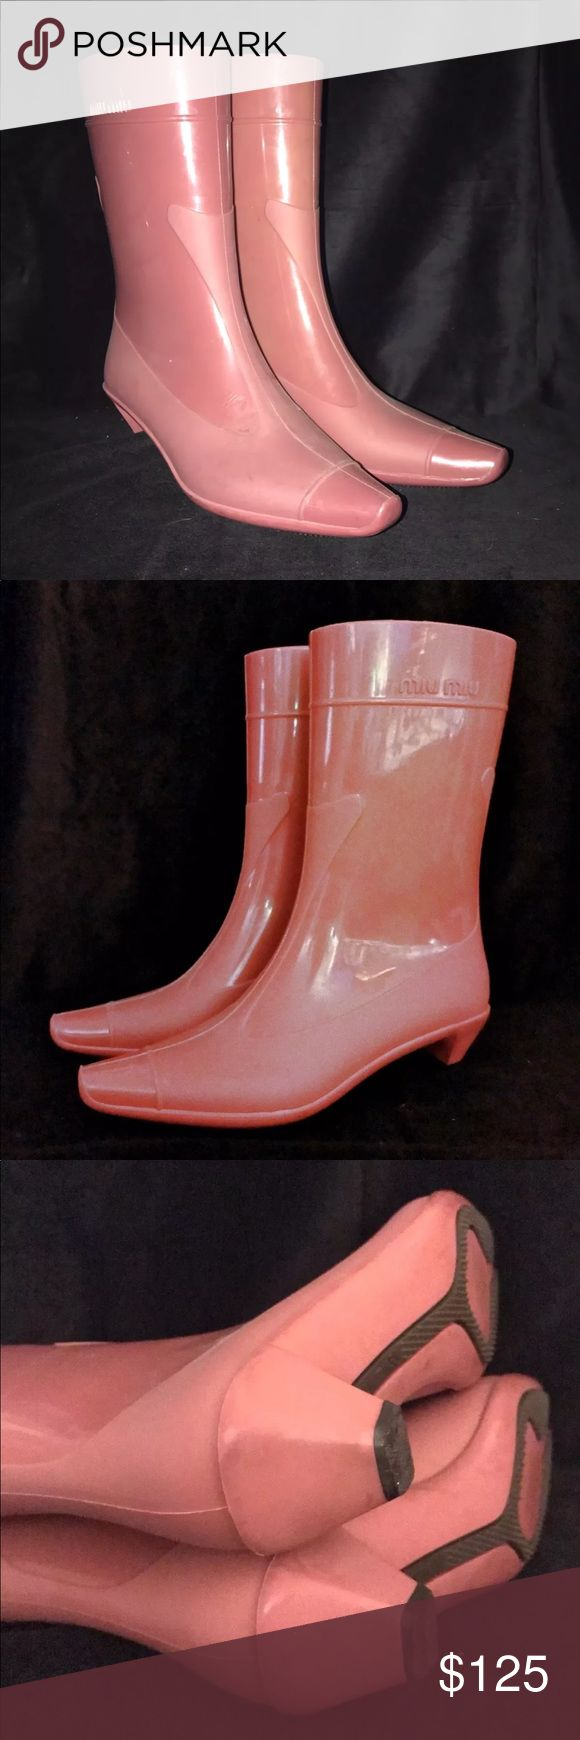 Miu Miu by Prada rubber rain boots Miu Miu by PRADA Rubber rain boots Color: retro pink Made in Italy Size IT 35 US 5 Gently worn, clean in very good conditions Final sale. No trade Priced to sell, NO OFFER Thanks Miu Miu Shoes Winter & Rain Boots